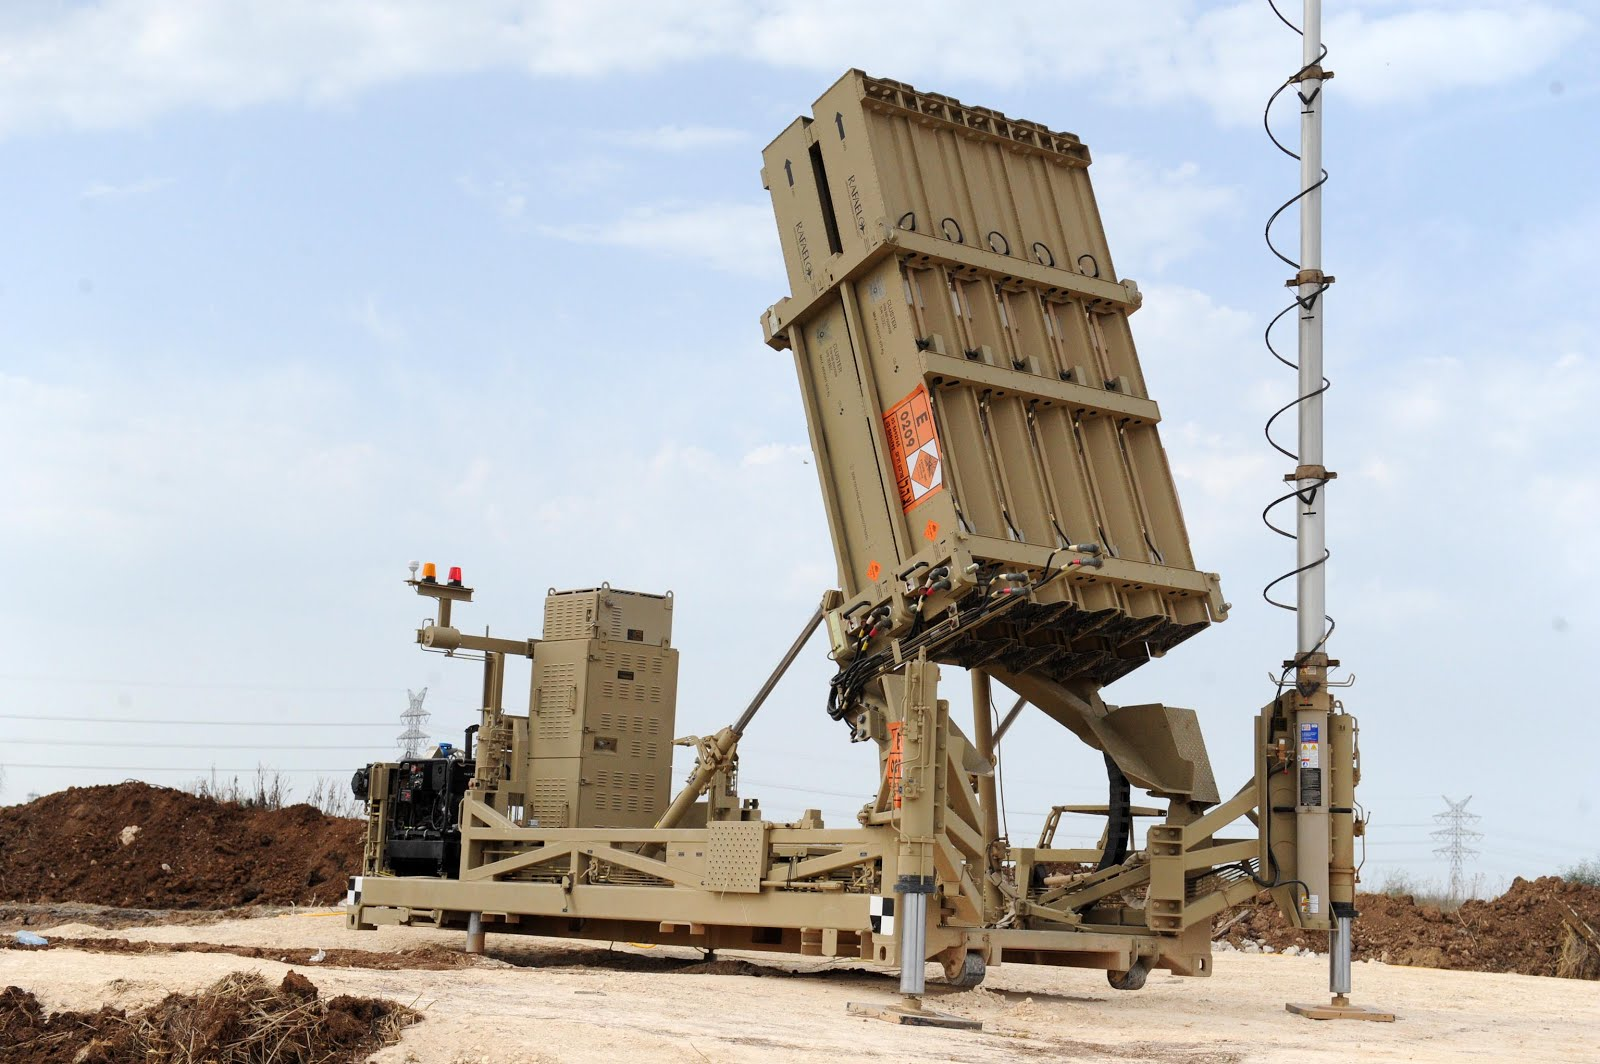 India Expresses Desire for Iron Dome System - Asian Defence News Today